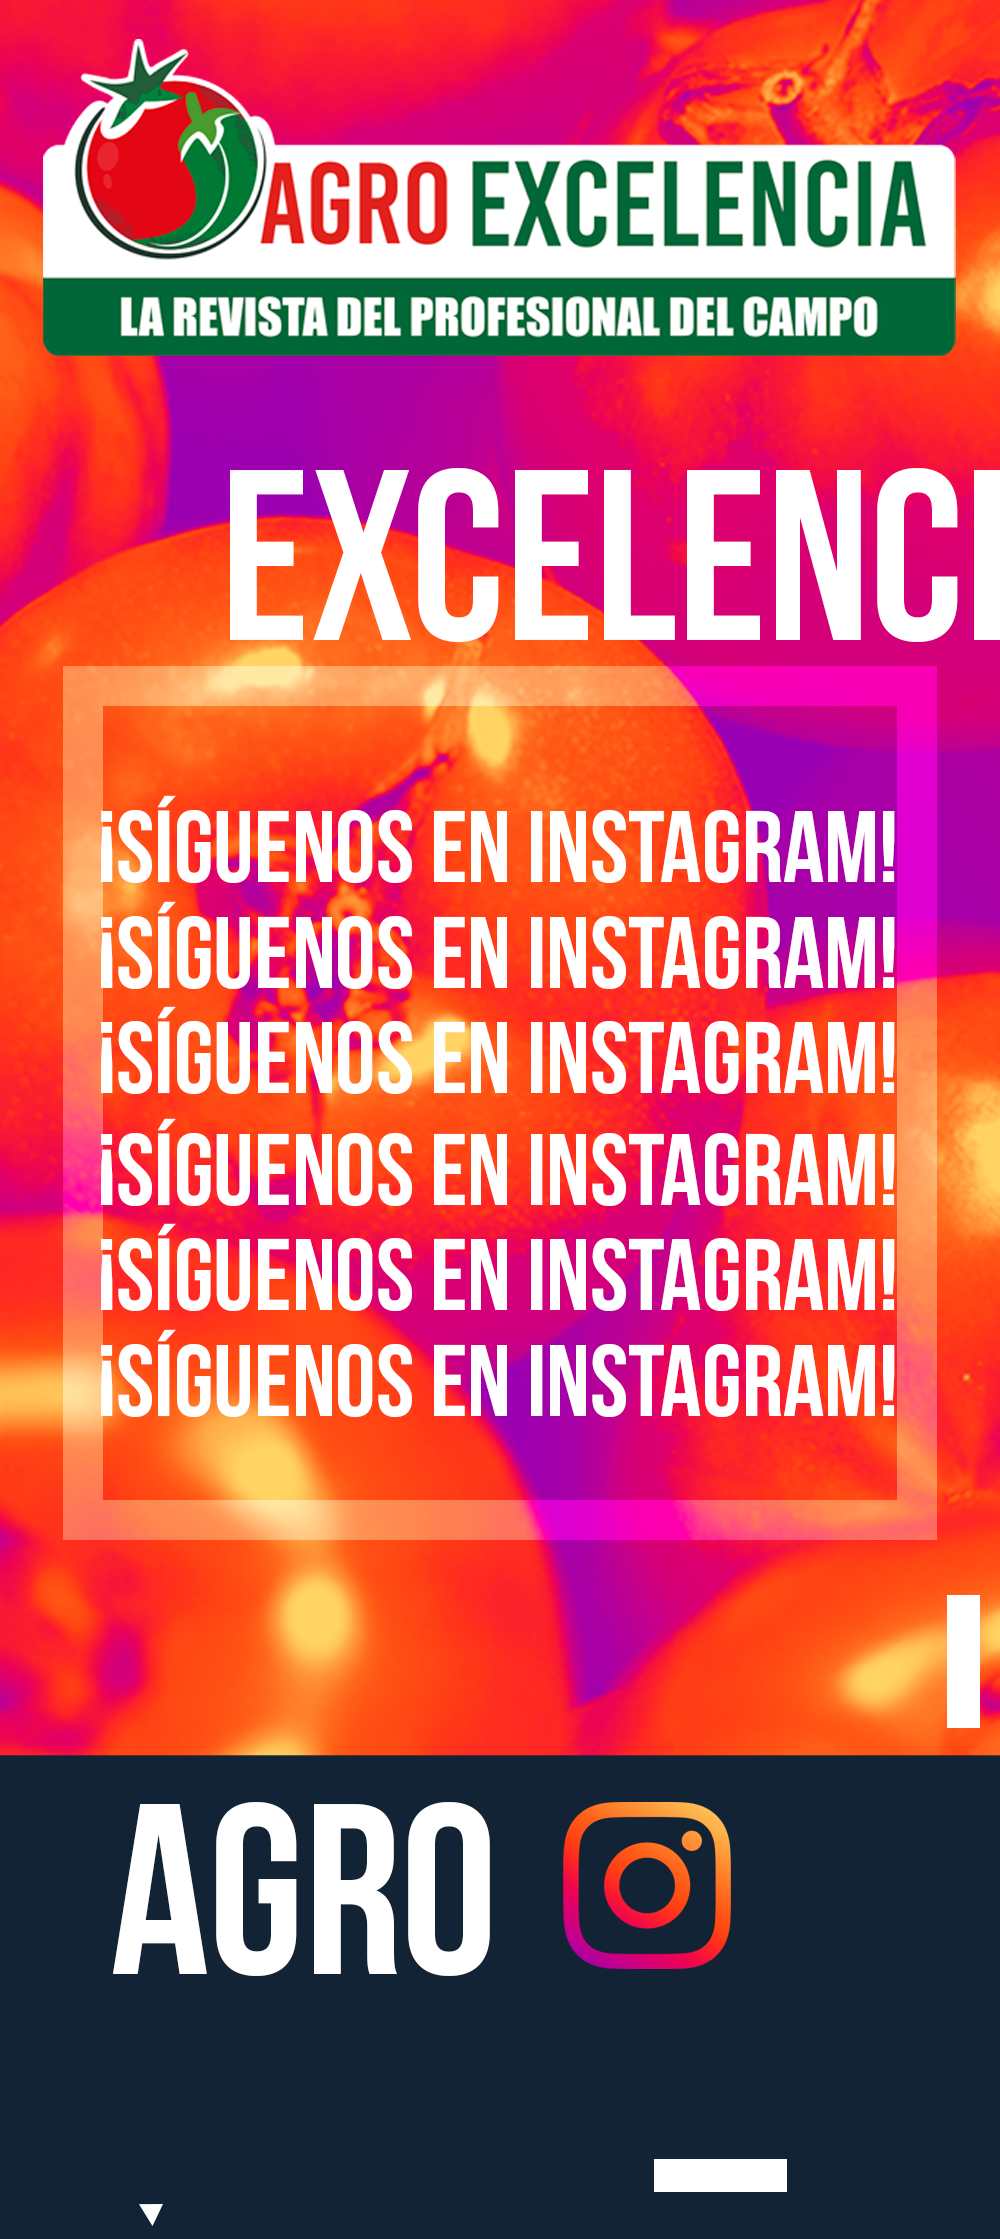 https://agroexcelencia.com/wp-content/uploads/2020/04/POST-15.png